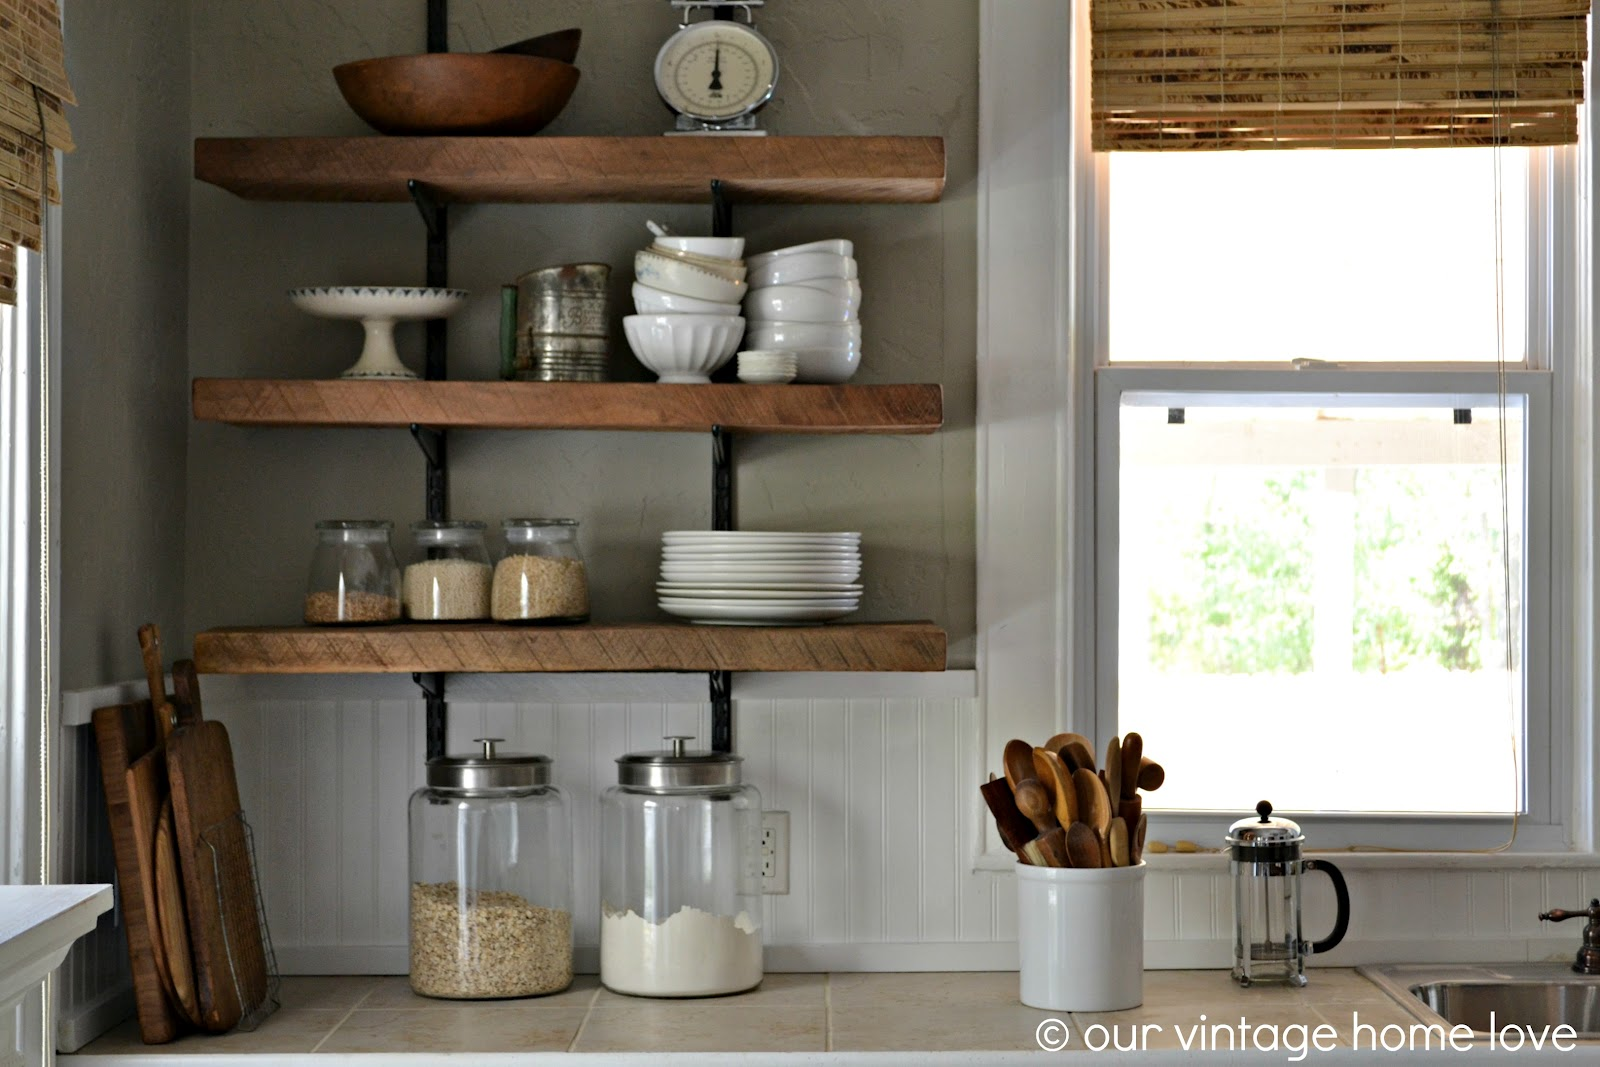 Reclaimed Wood Cabinets ~ Vintage home love reclaimed wood kitchen shelving reveal